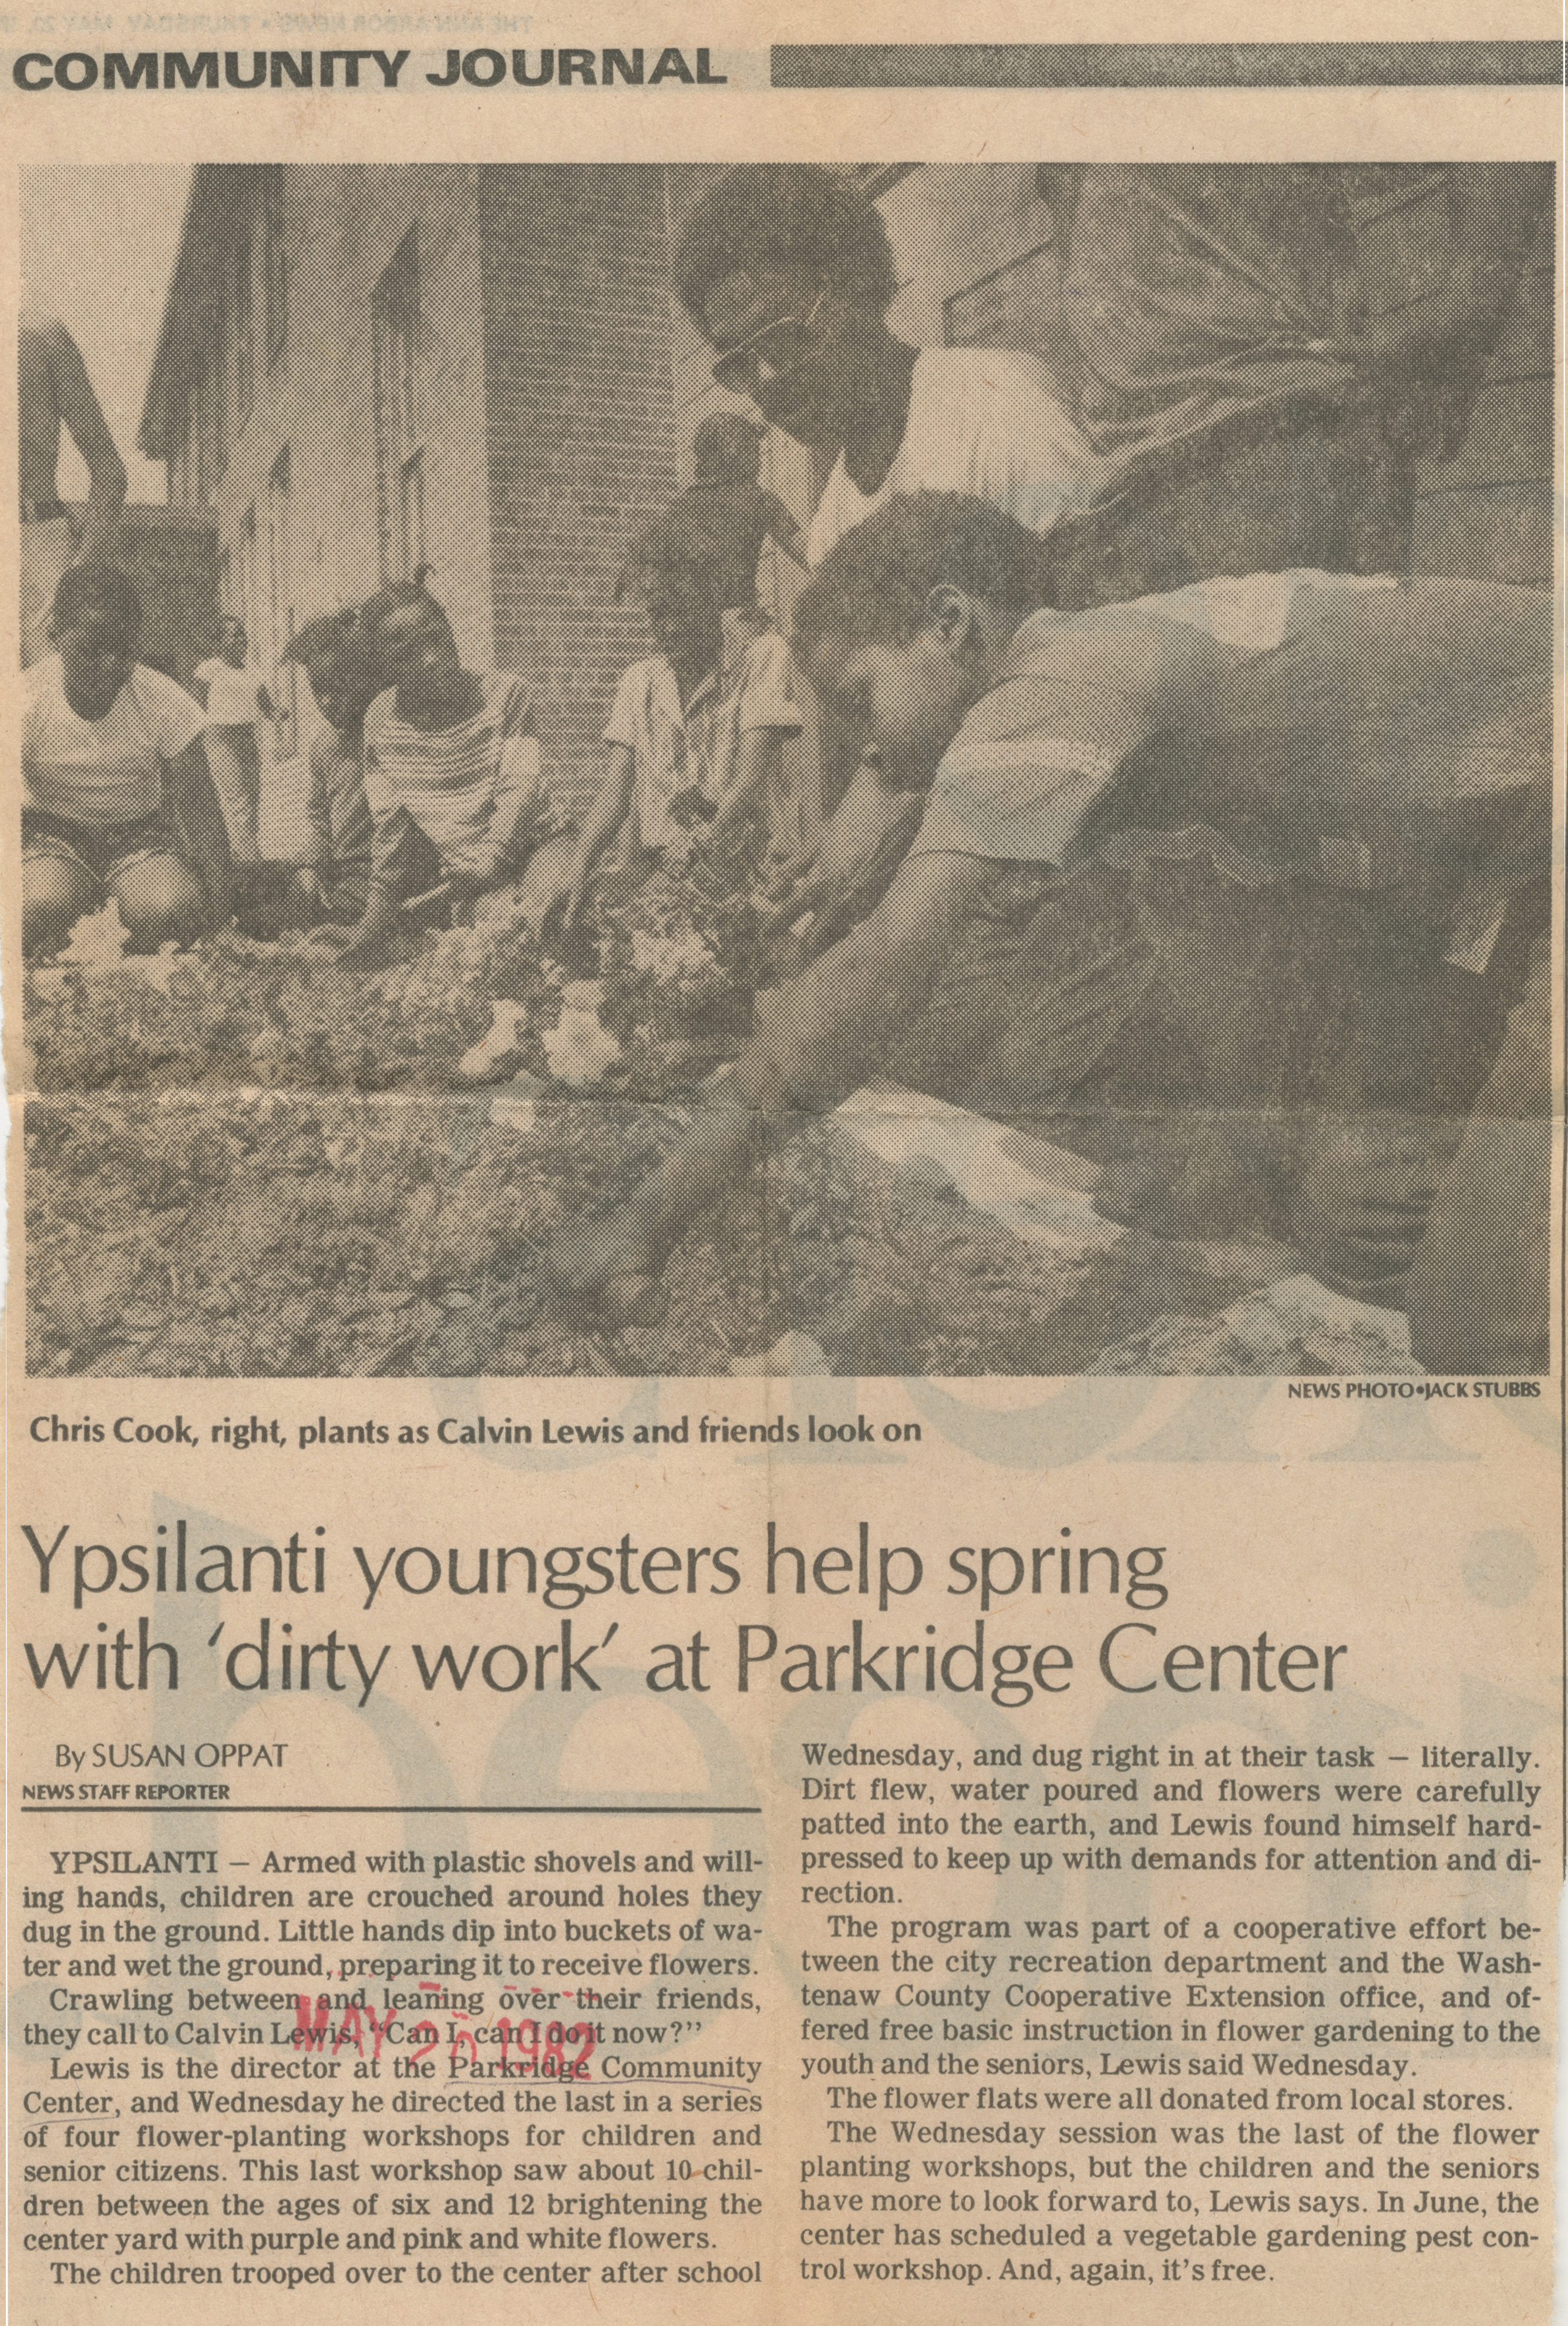 Ypsilanti Youngsters Help Spring With 'Dirty Work' At Parkridge Center image